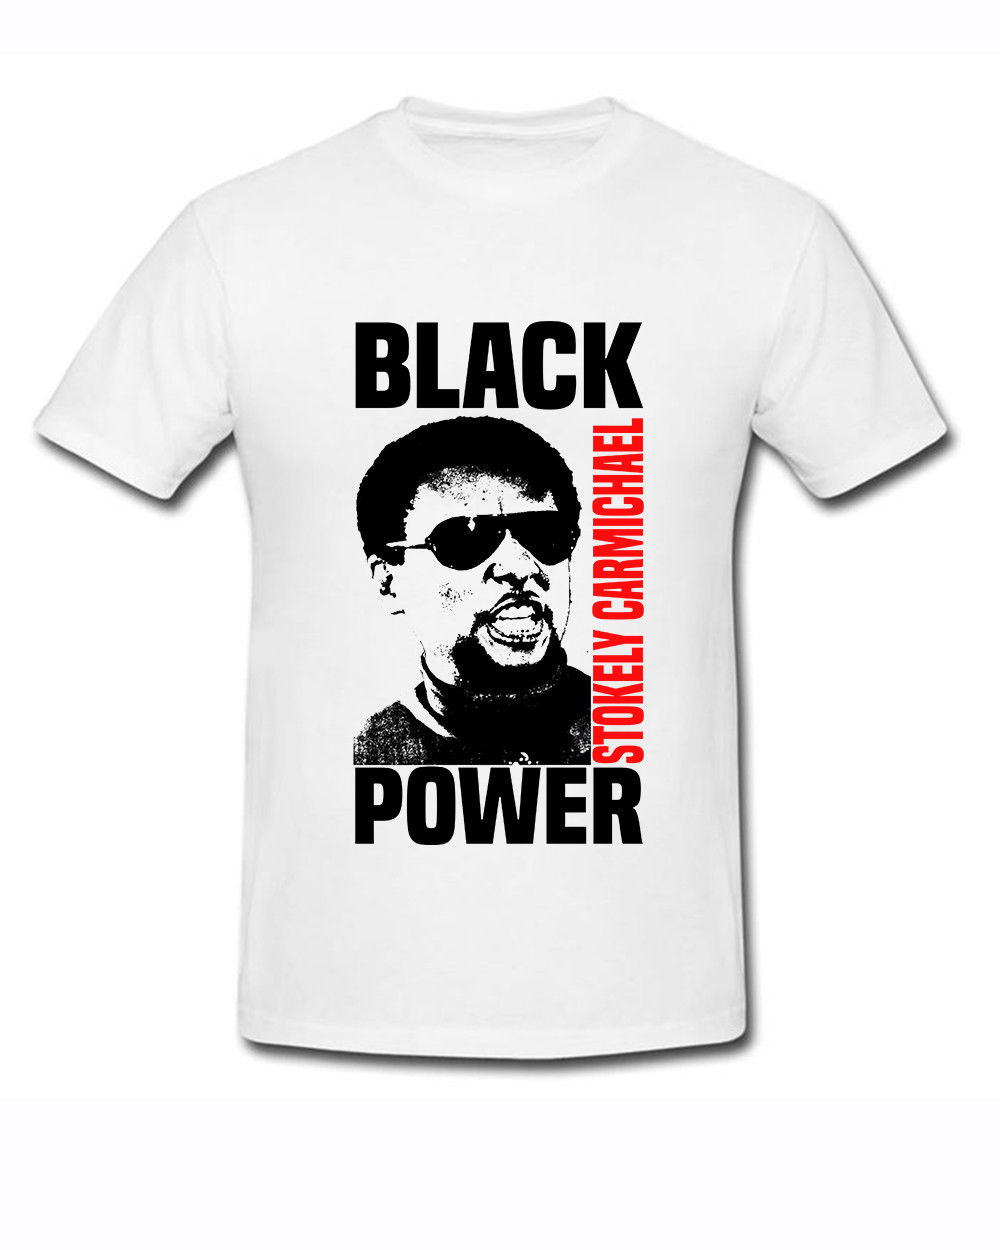 Stokely Carmichael-Black Power White Men T-shirt Size S-3XL New Fashion Mens Short Sleeve T Shirt Cotton T Shirts TOP TEE